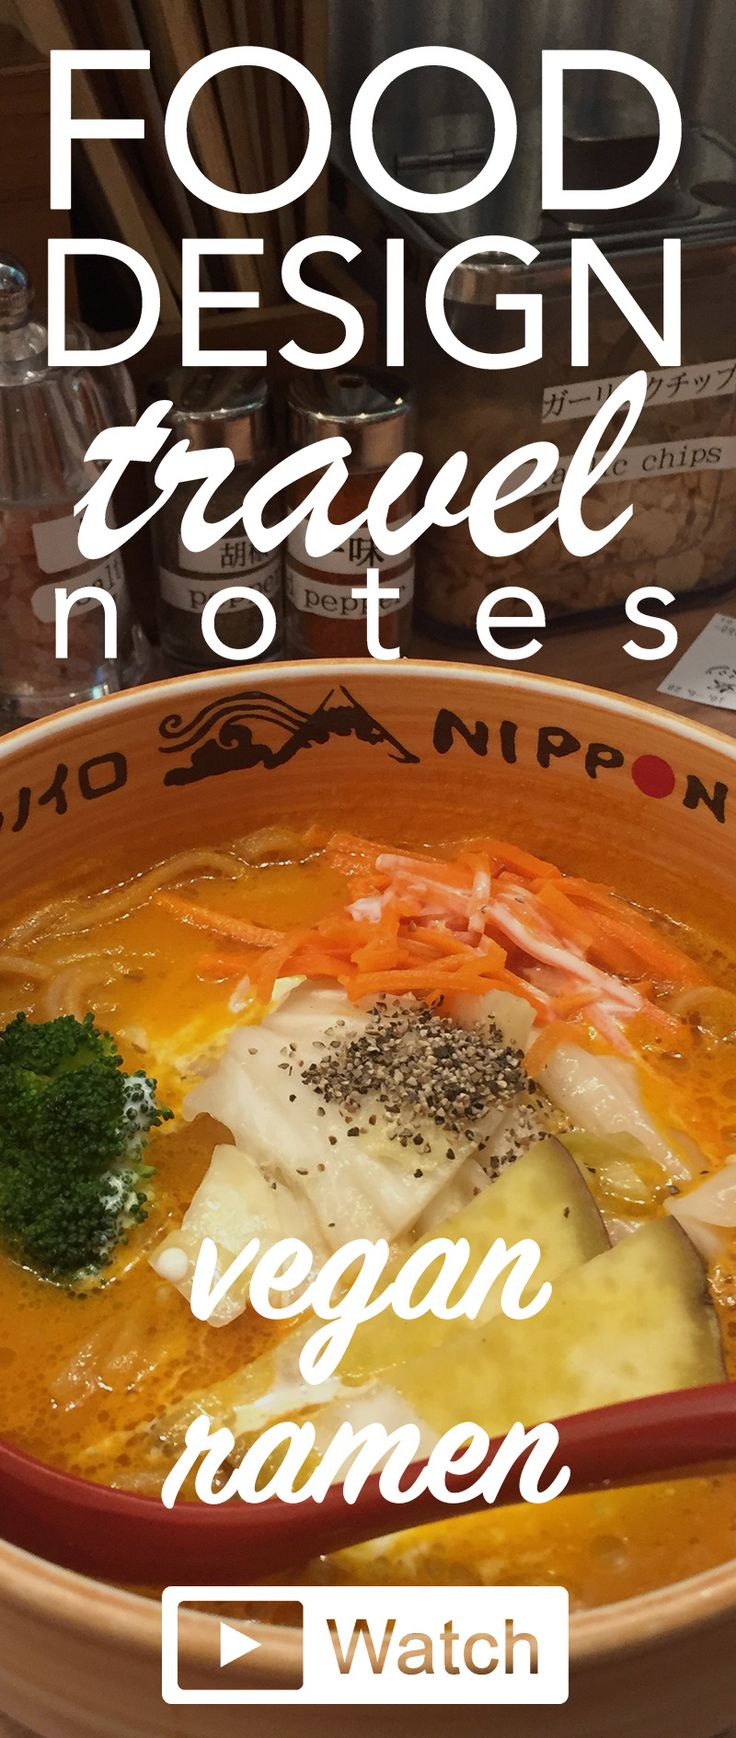 Food Design Travel Note: Vegan Ramen in Tokyo, Japan! Ramen are conquering the world, and they are delicious! But what about those of us who are vegan and vegetarian? I've found a little place who won awards for its vegan ramen! Watch my experience here: http://francesca-zampollo.com/vegan-ramen-in-tokyo/